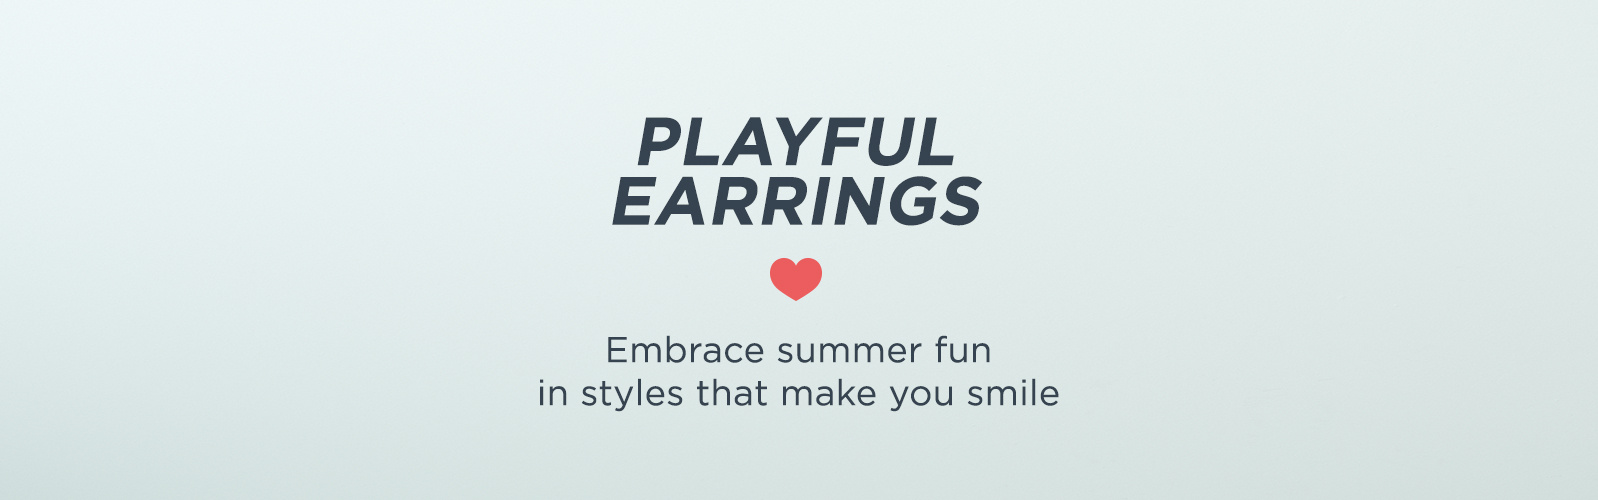 Playful Earrings. Embrace summer fun in styles that make you smile